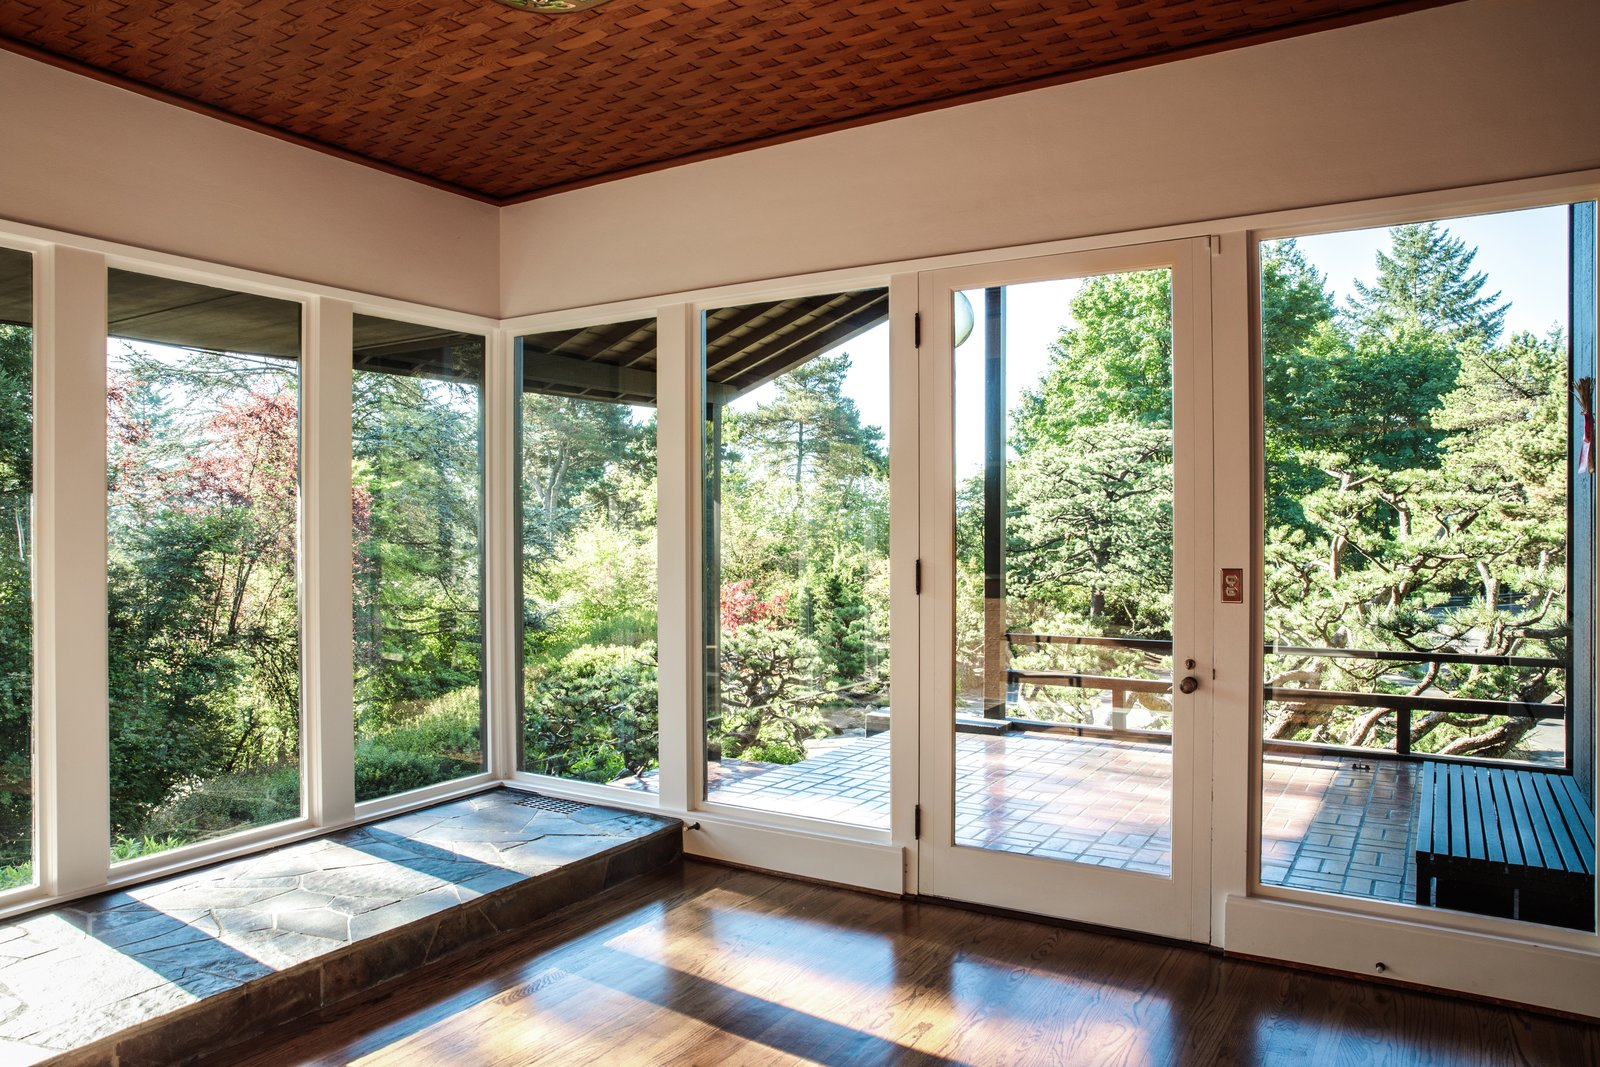 Contractor Patrick O'Neil repaired the woven Douglas fir ceiling in the foyer. Tagged: Windows.  Photo 9 of 15 in Nearly 80 Years Later, an Architect Rescues a Japanese-Inspired  Masterwork Designed by His Father